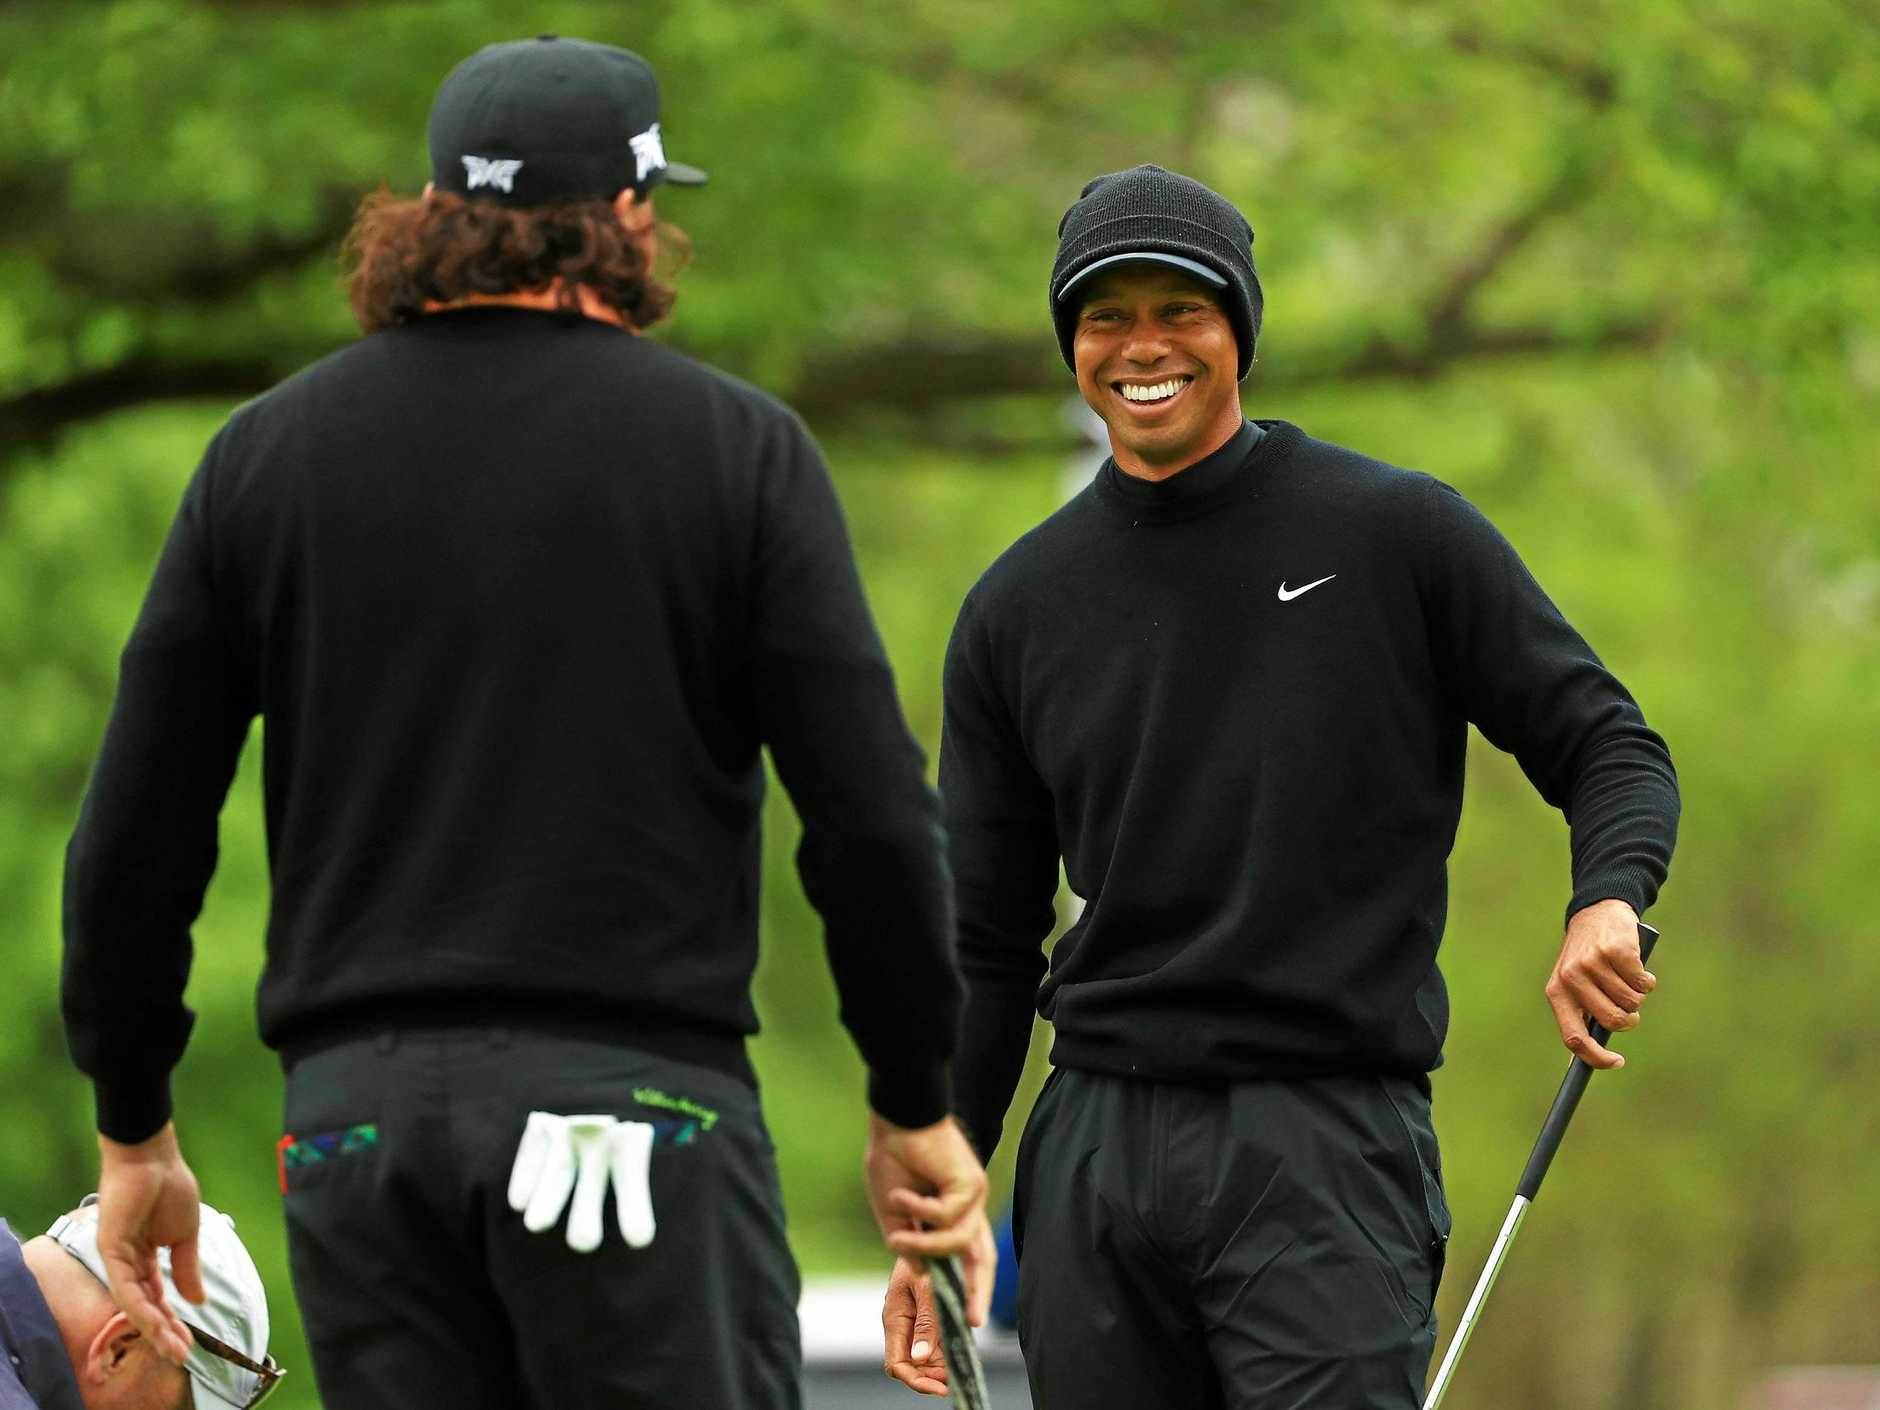 Tiger Woods shares a moment with Pat Perez on the practice green at the Bethpage Black course. Picture: Mike Ehrmann/Getty Images